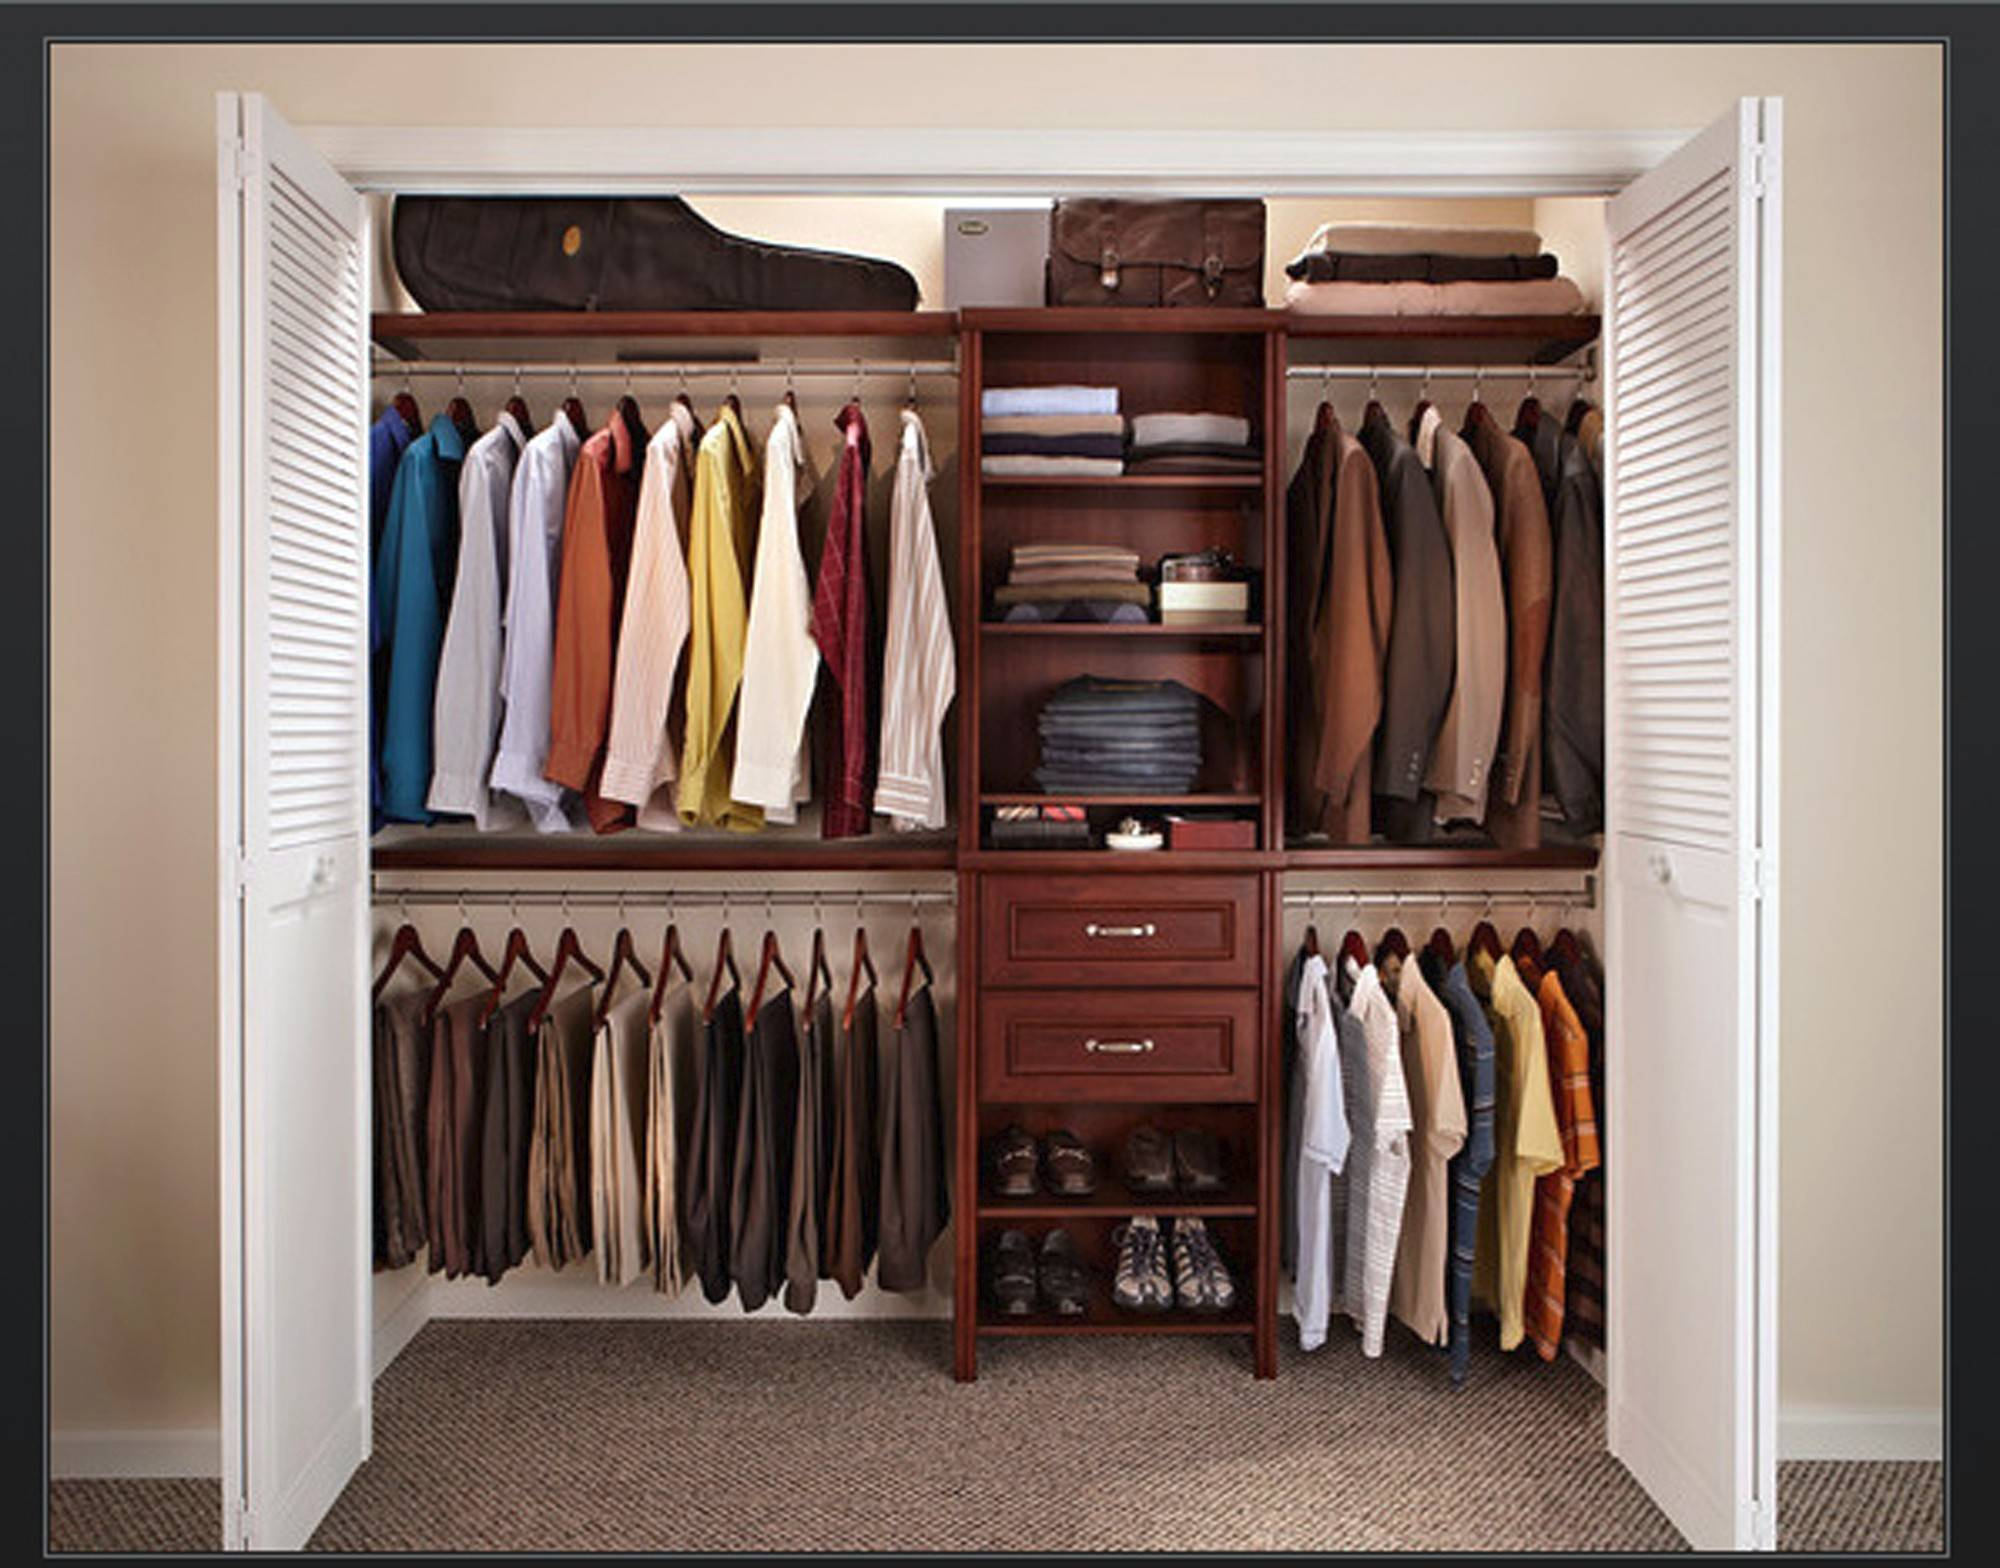 The key to organizing a closet is to part with any clothing you do not wear.